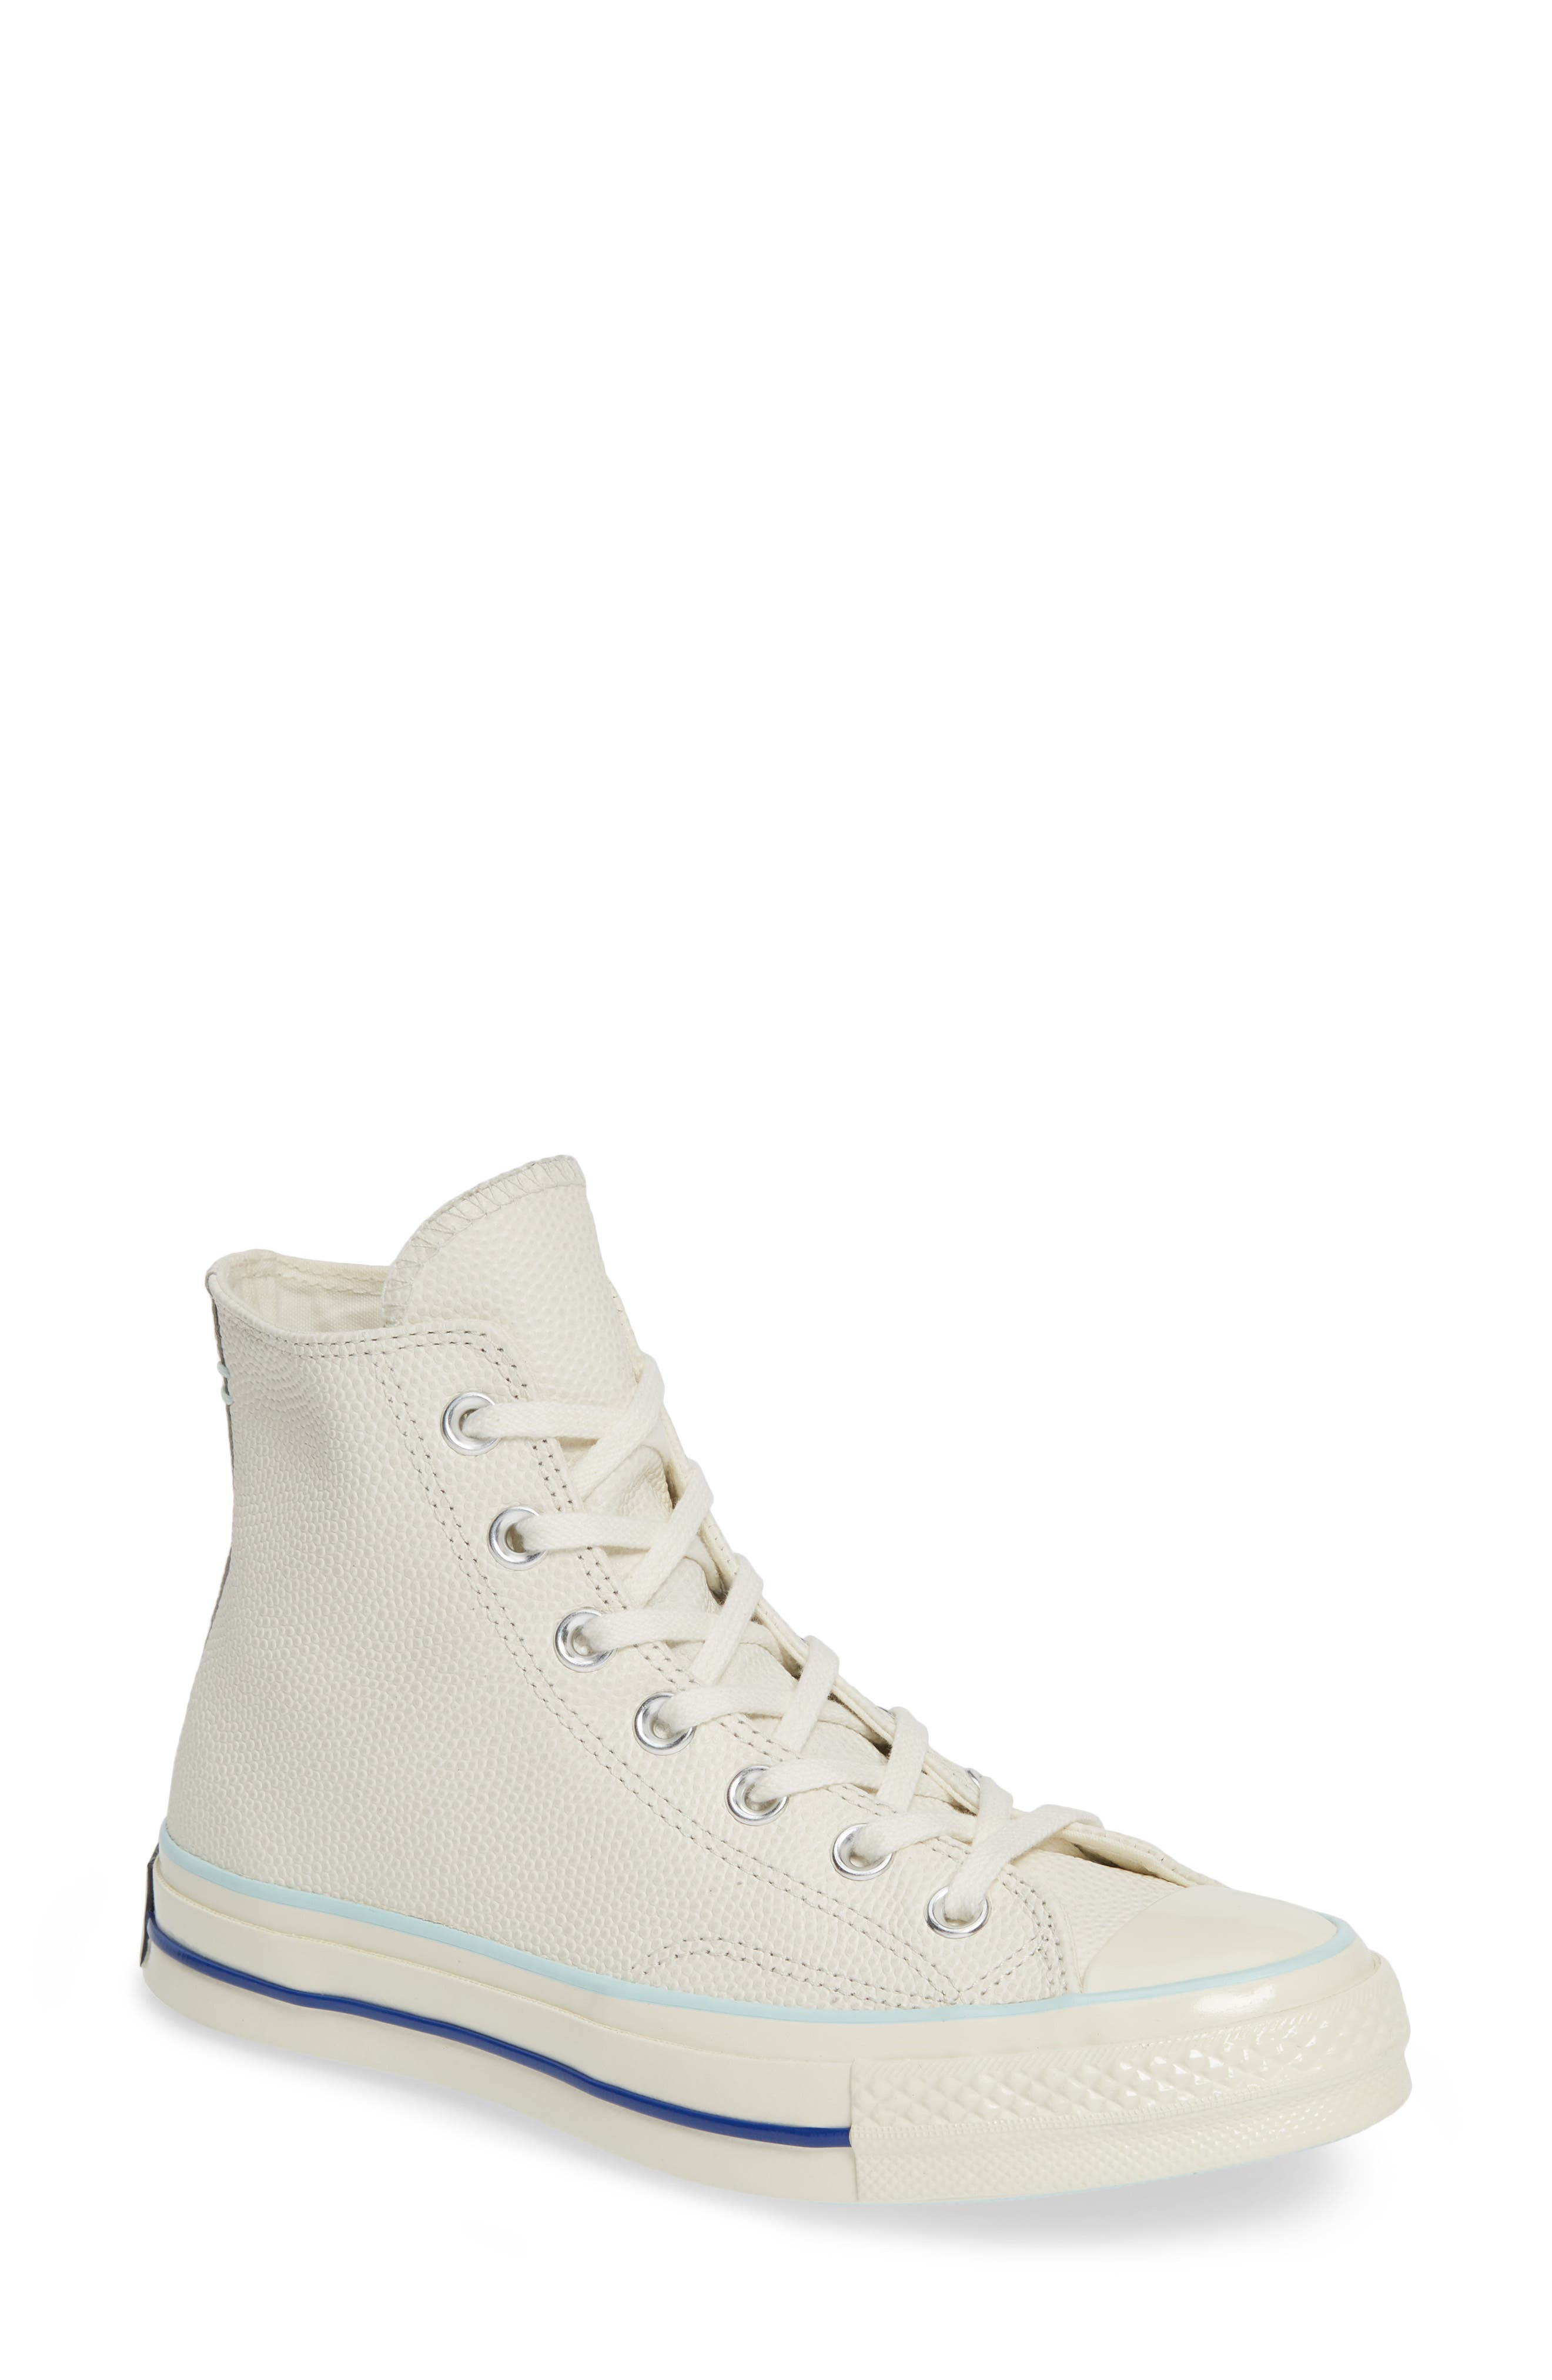 CONVERSE, Chuck Taylor<sup>®</sup> All Star<sup>®</sup> 70 High Top Leather Sneaker, Main thumbnail 1, color, EGRET/ TEAL TINT/ EGRET